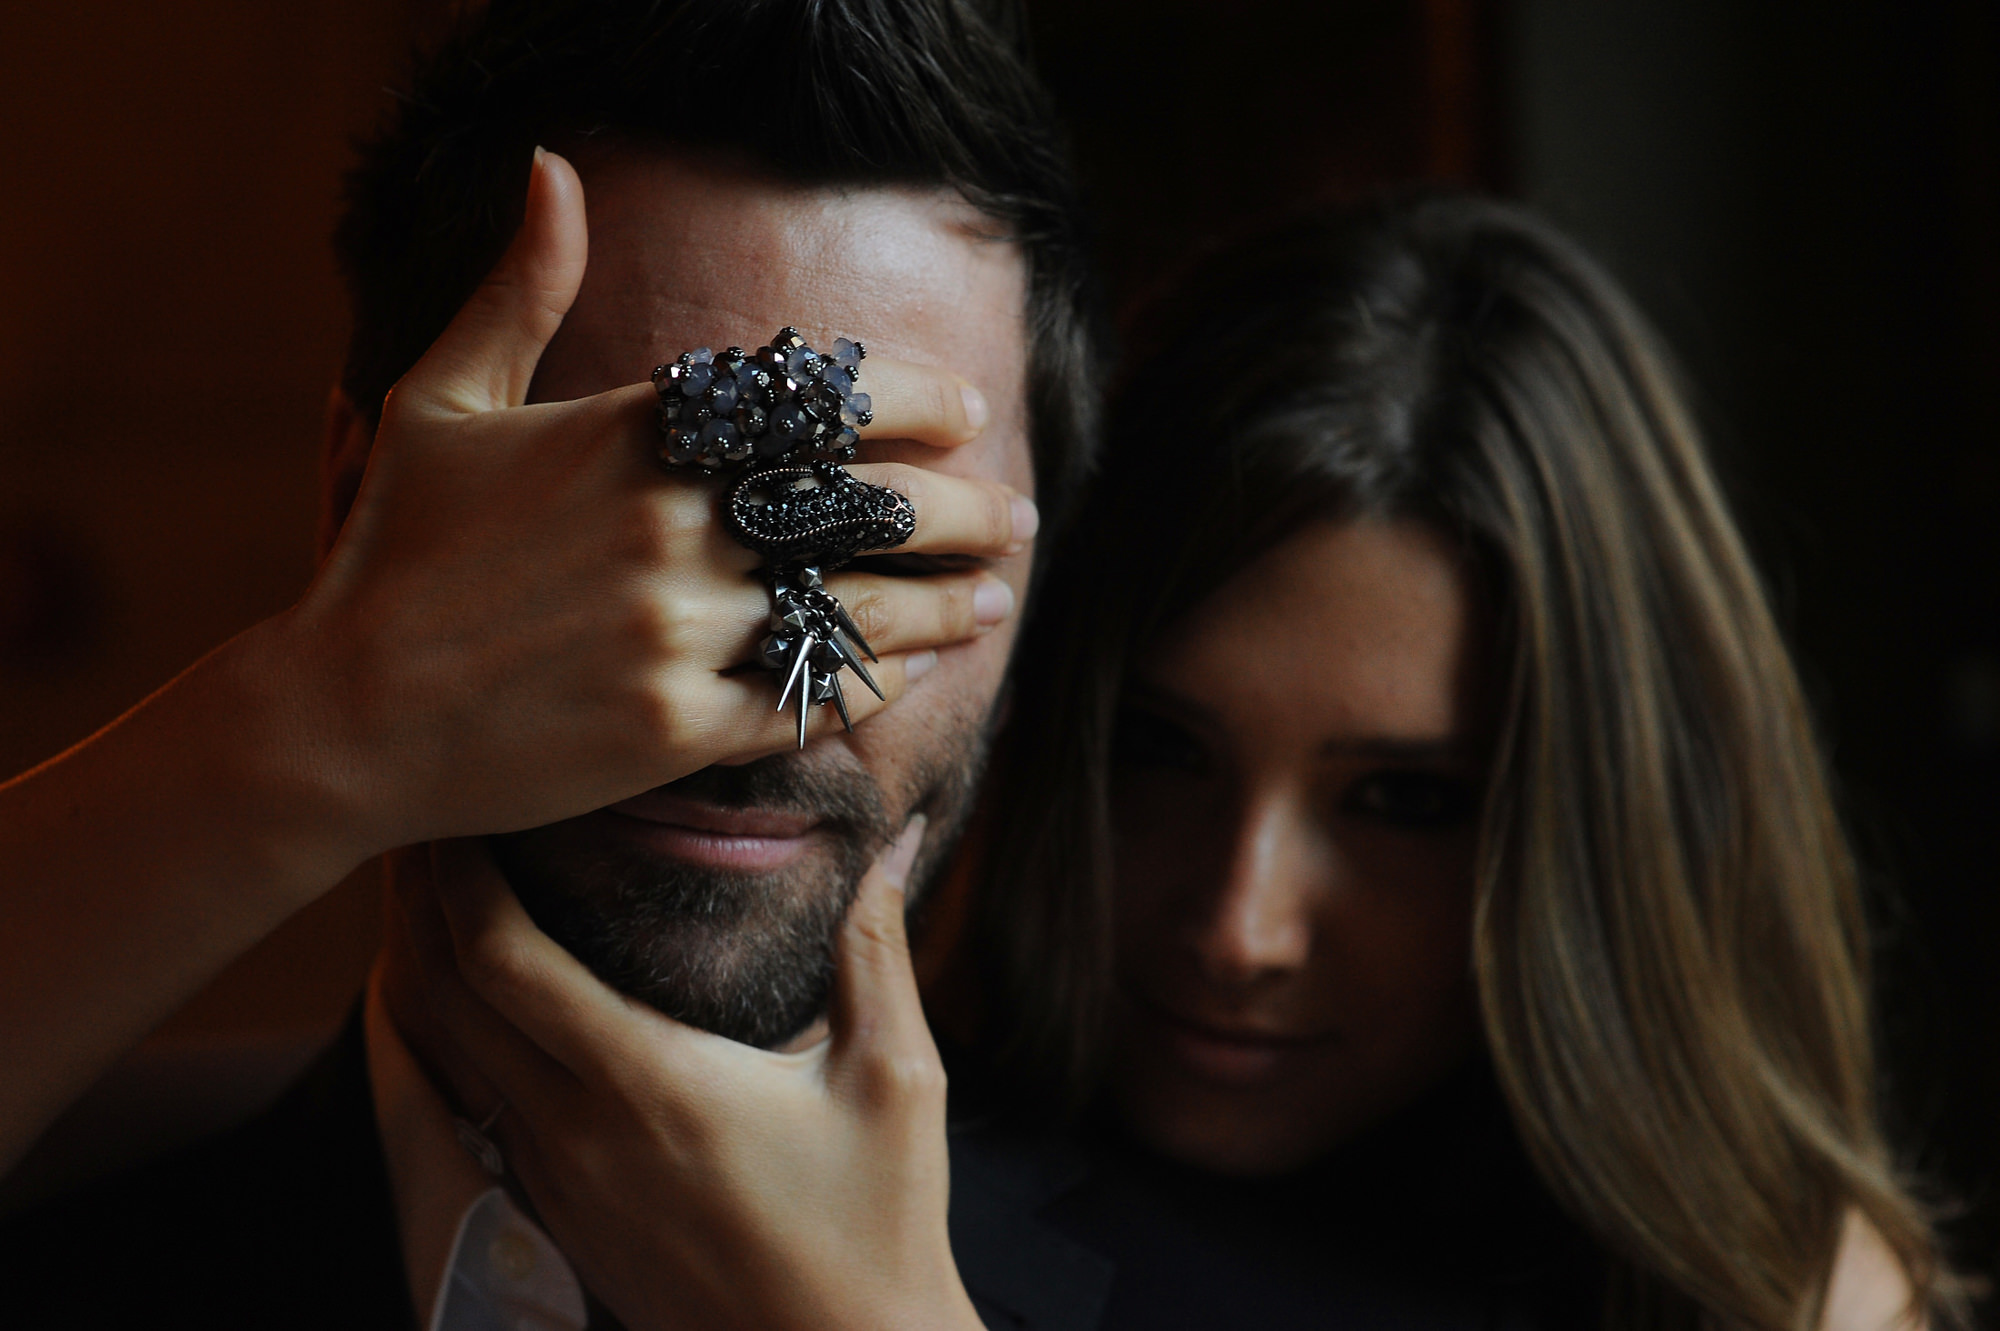 bride-covering-groom-eyes-black-jewelled-rings-worlds-best-wedding-photos-daniel-aguilar-houston-wedding-photographers